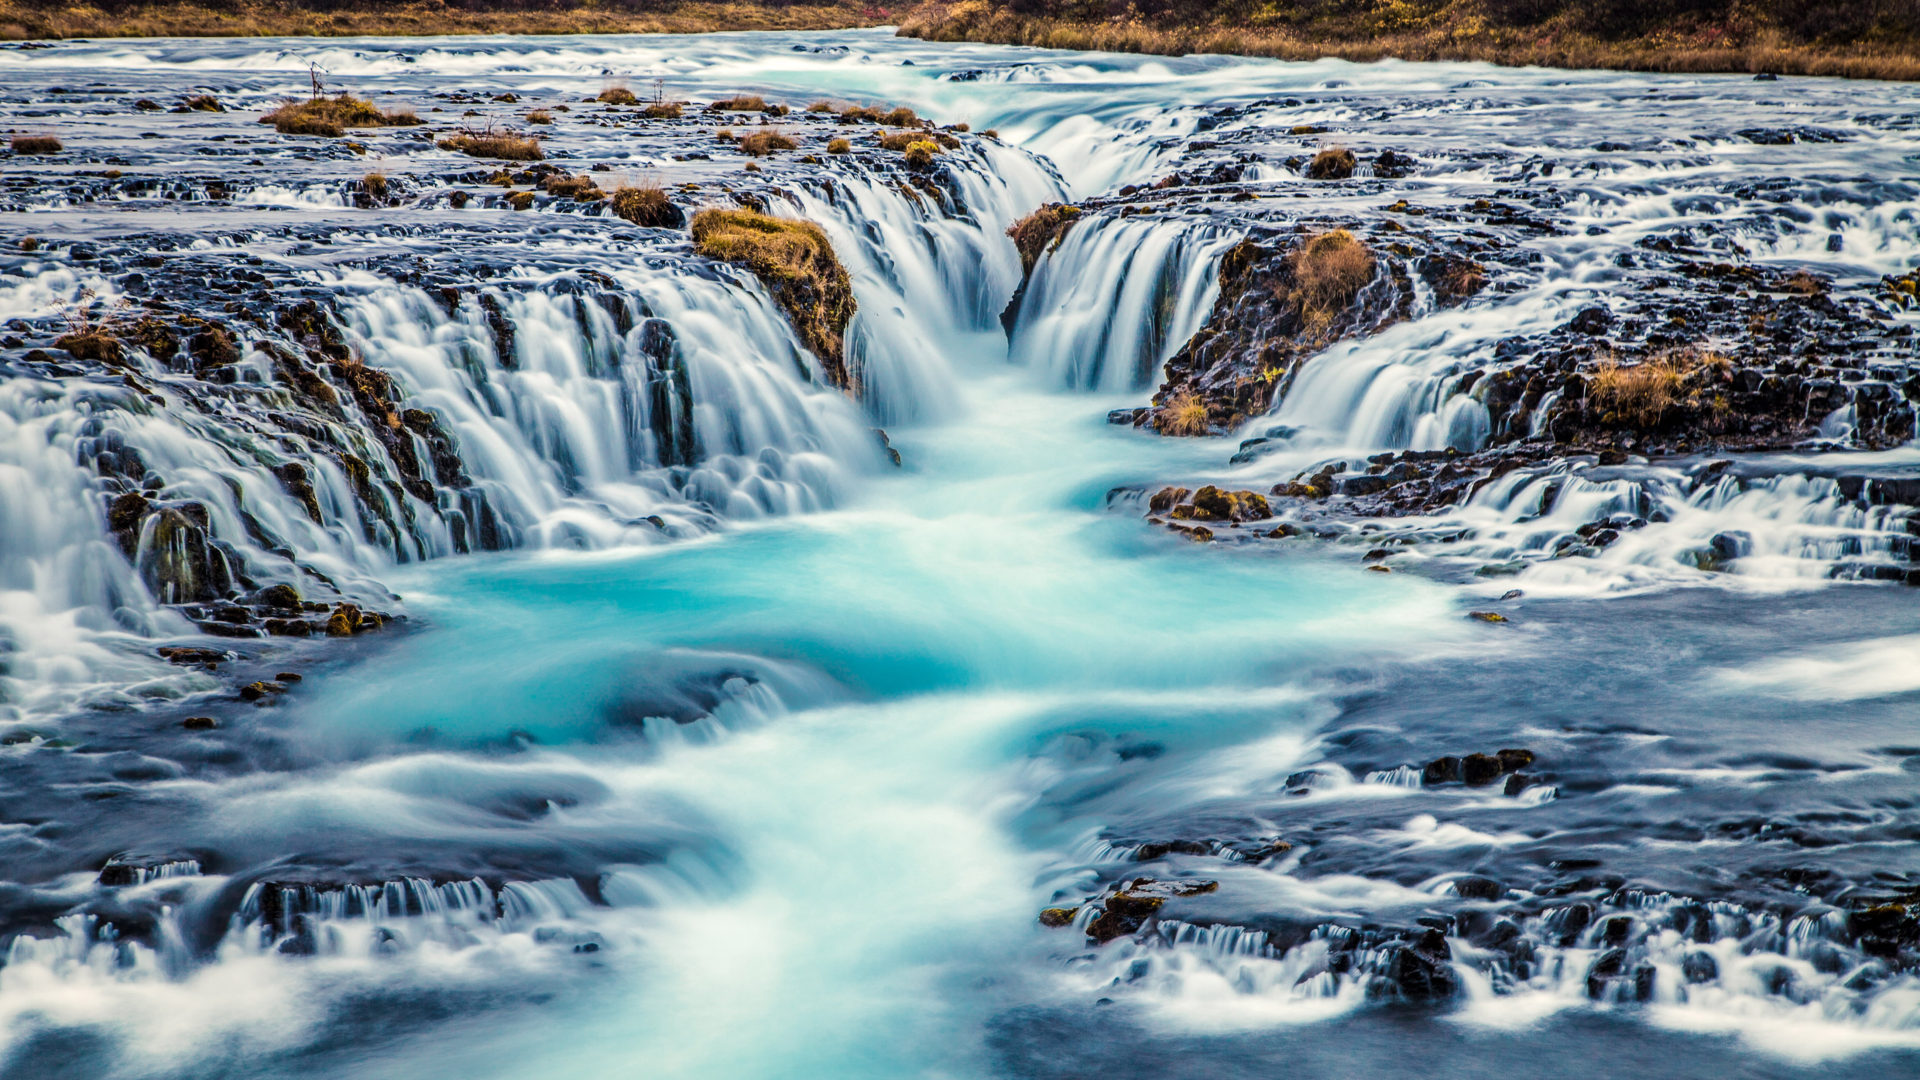 Free Fall Disney Wallpaper Bruarfoss Waterfall Turquoise Blue Water In Iceland Nature